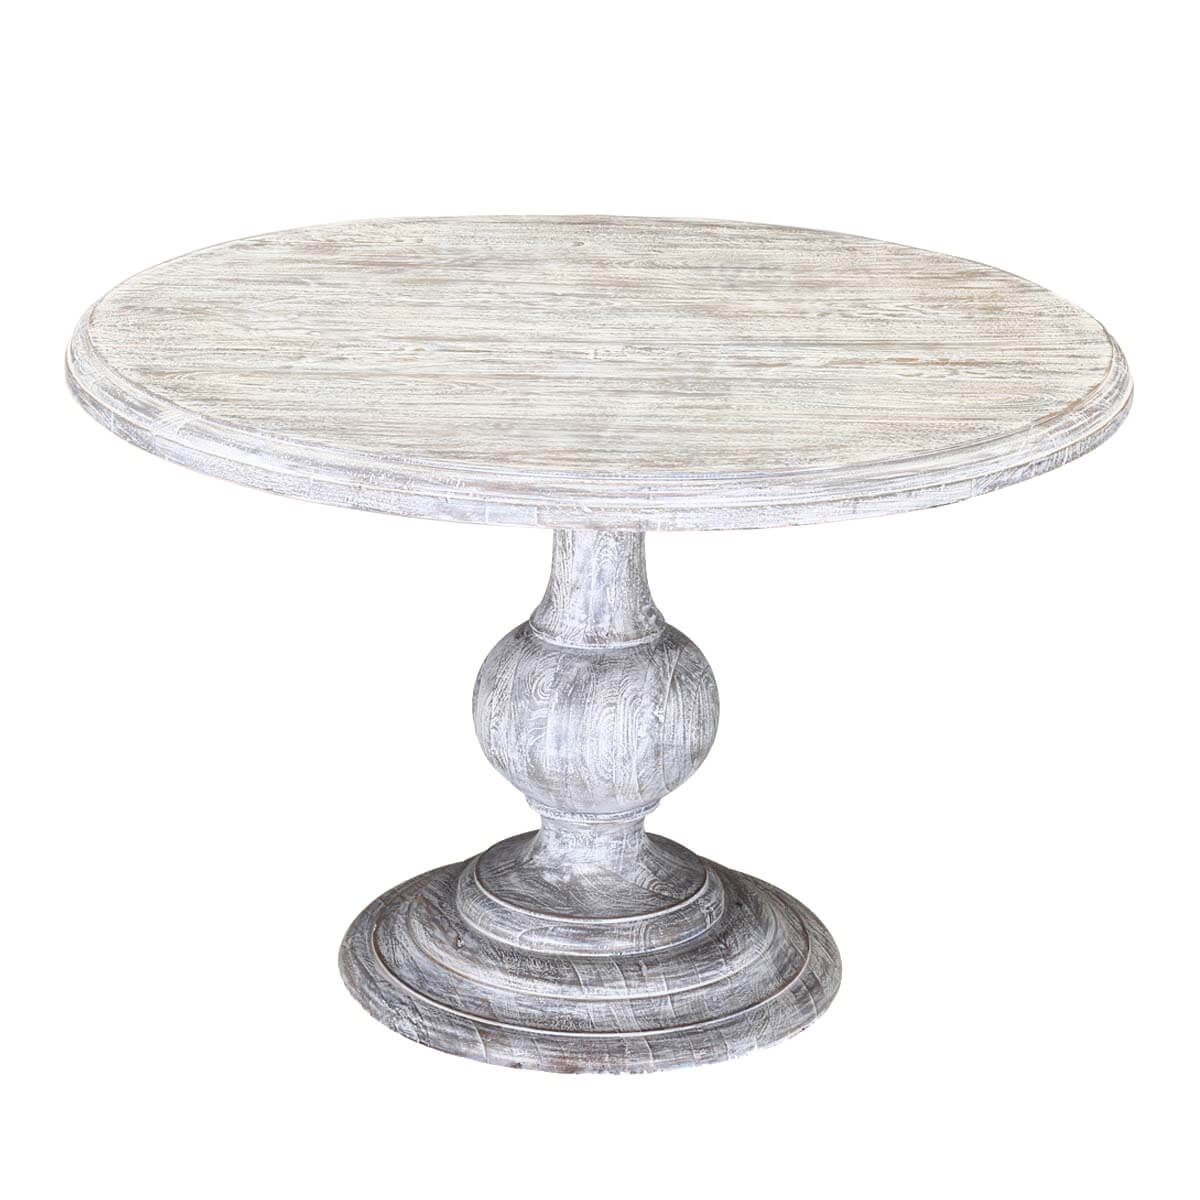 Winter White Mango Wood 48 Round Pedestal Dining Table